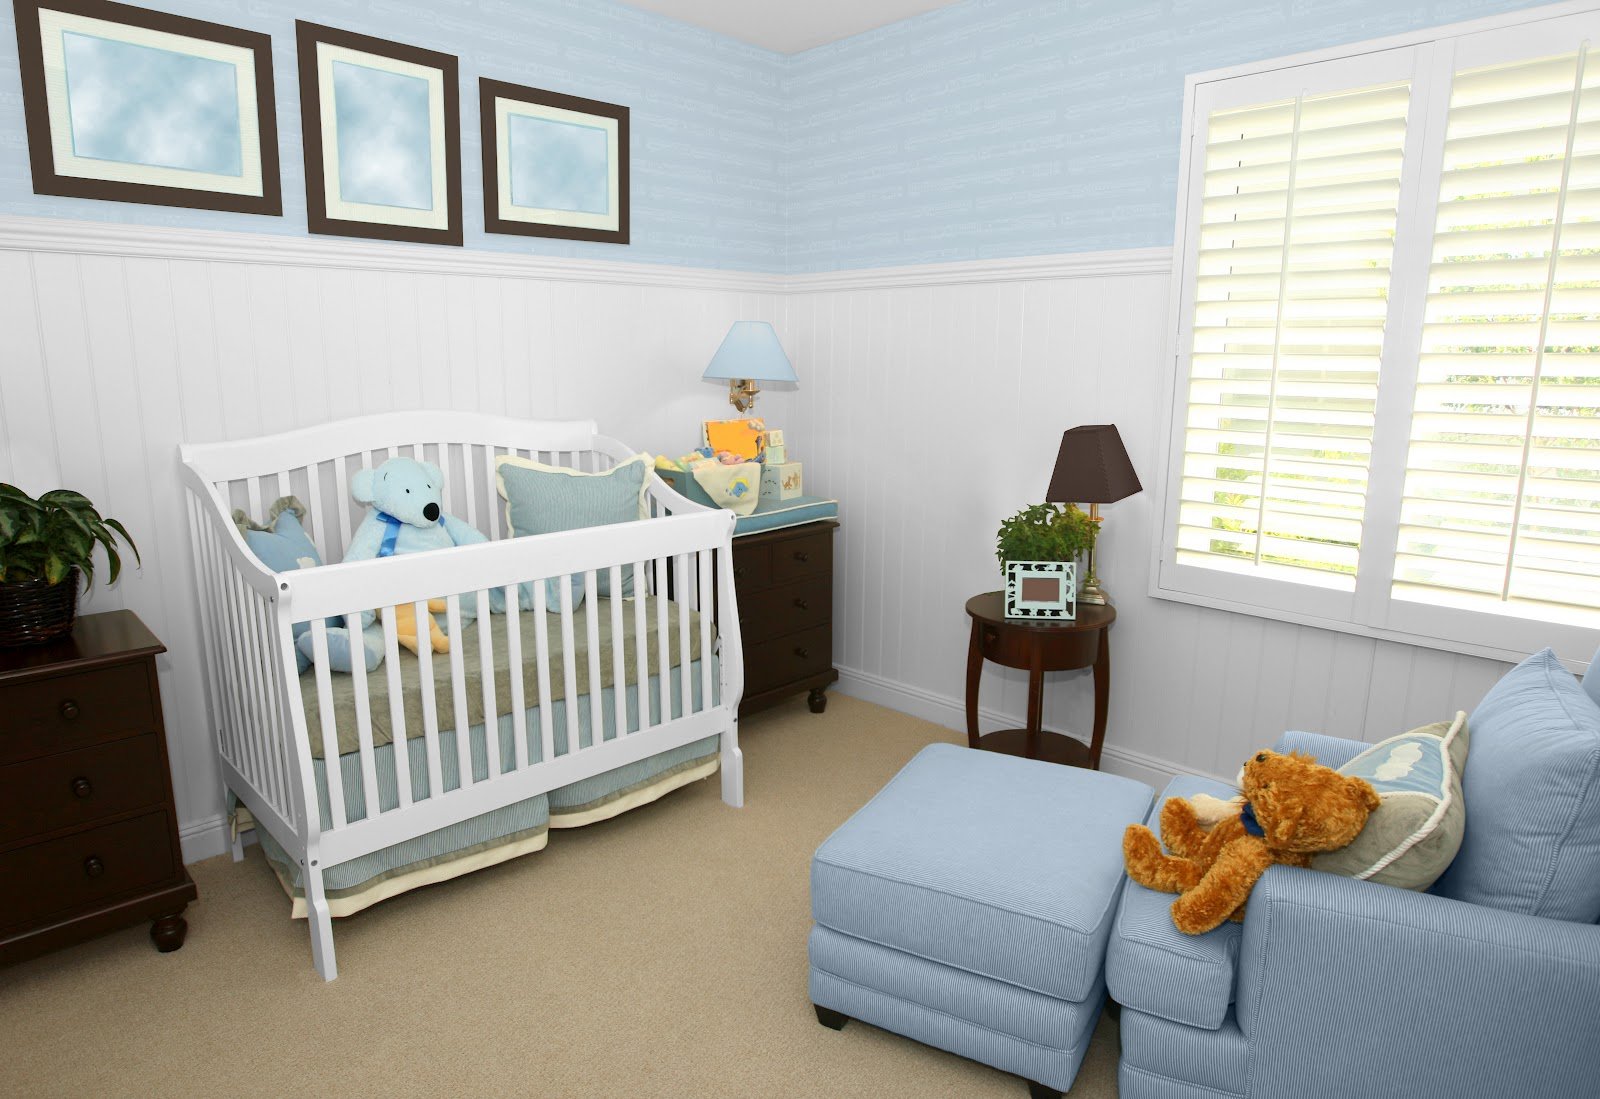 Top 10 baby nursery room colors and decorating ideas for Baby rooms decoration ideas